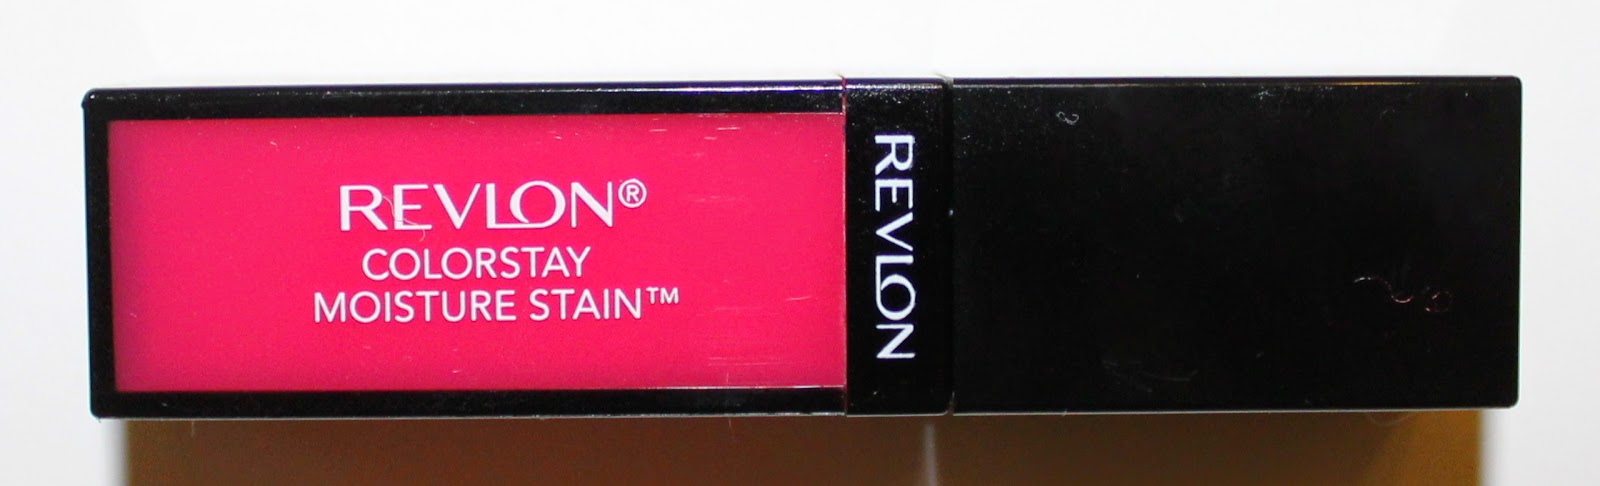 Revlon ColorStay Moisture Stain in India Intrigue